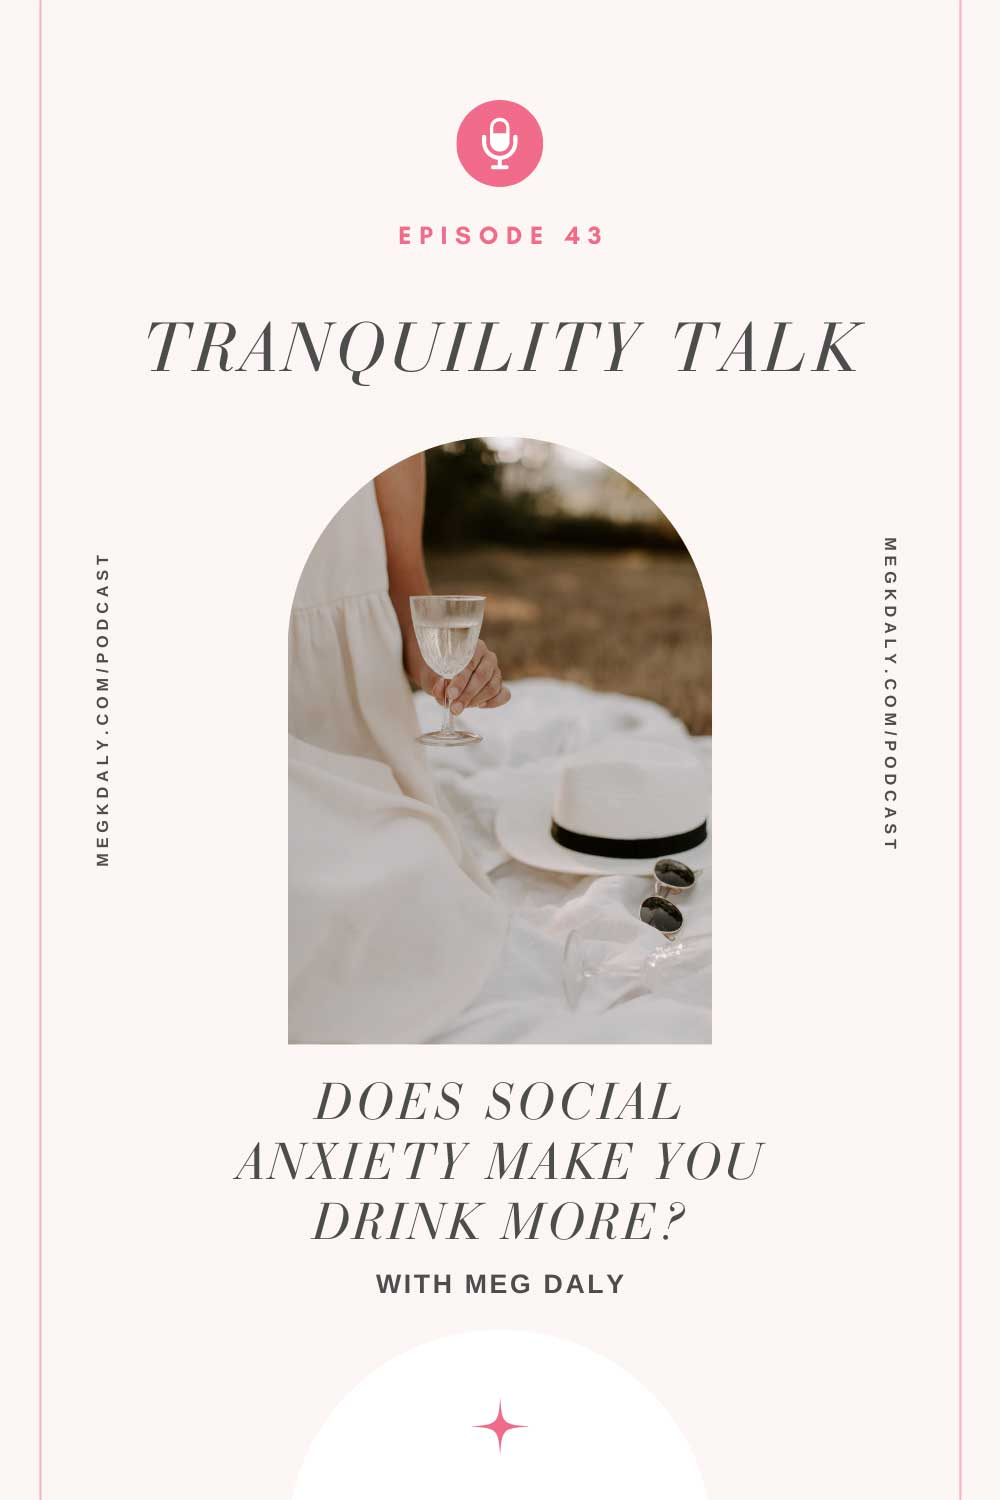 Tranquility Talk: Does social anxiety make you drink more?